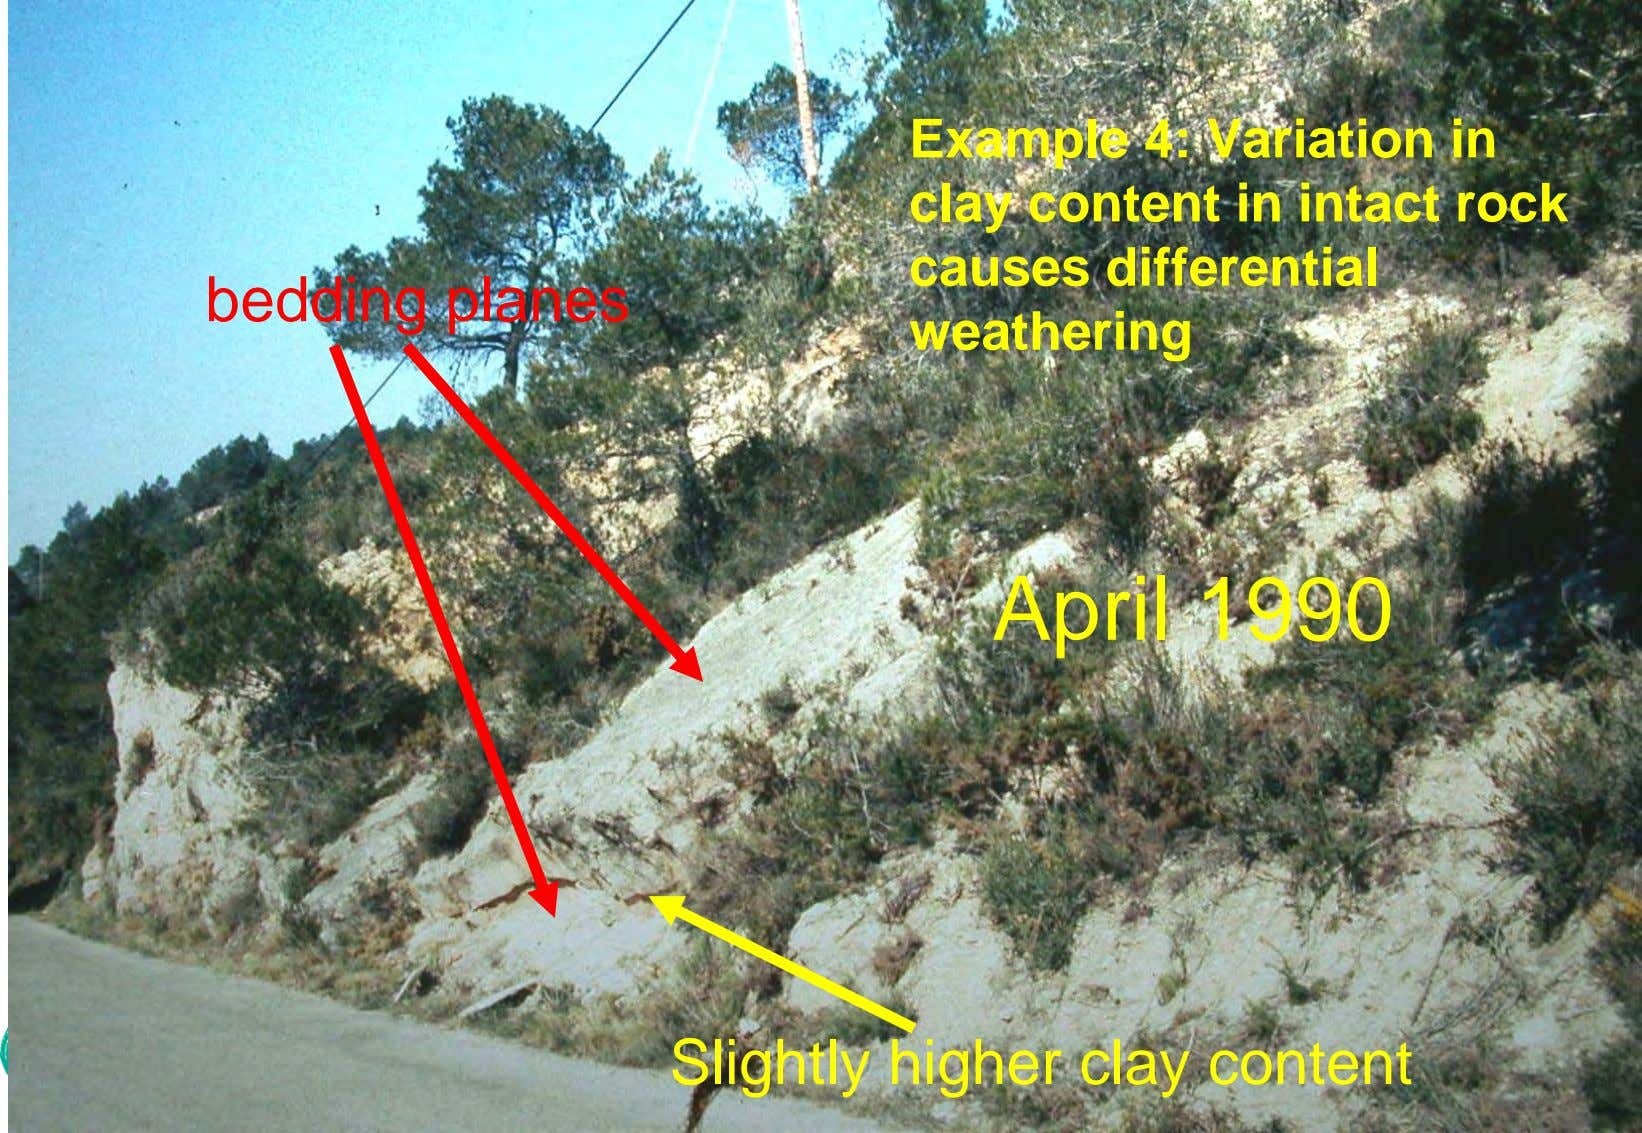 bedding planes Example 4: Variation in clay content in intact rock causes differential weathering April